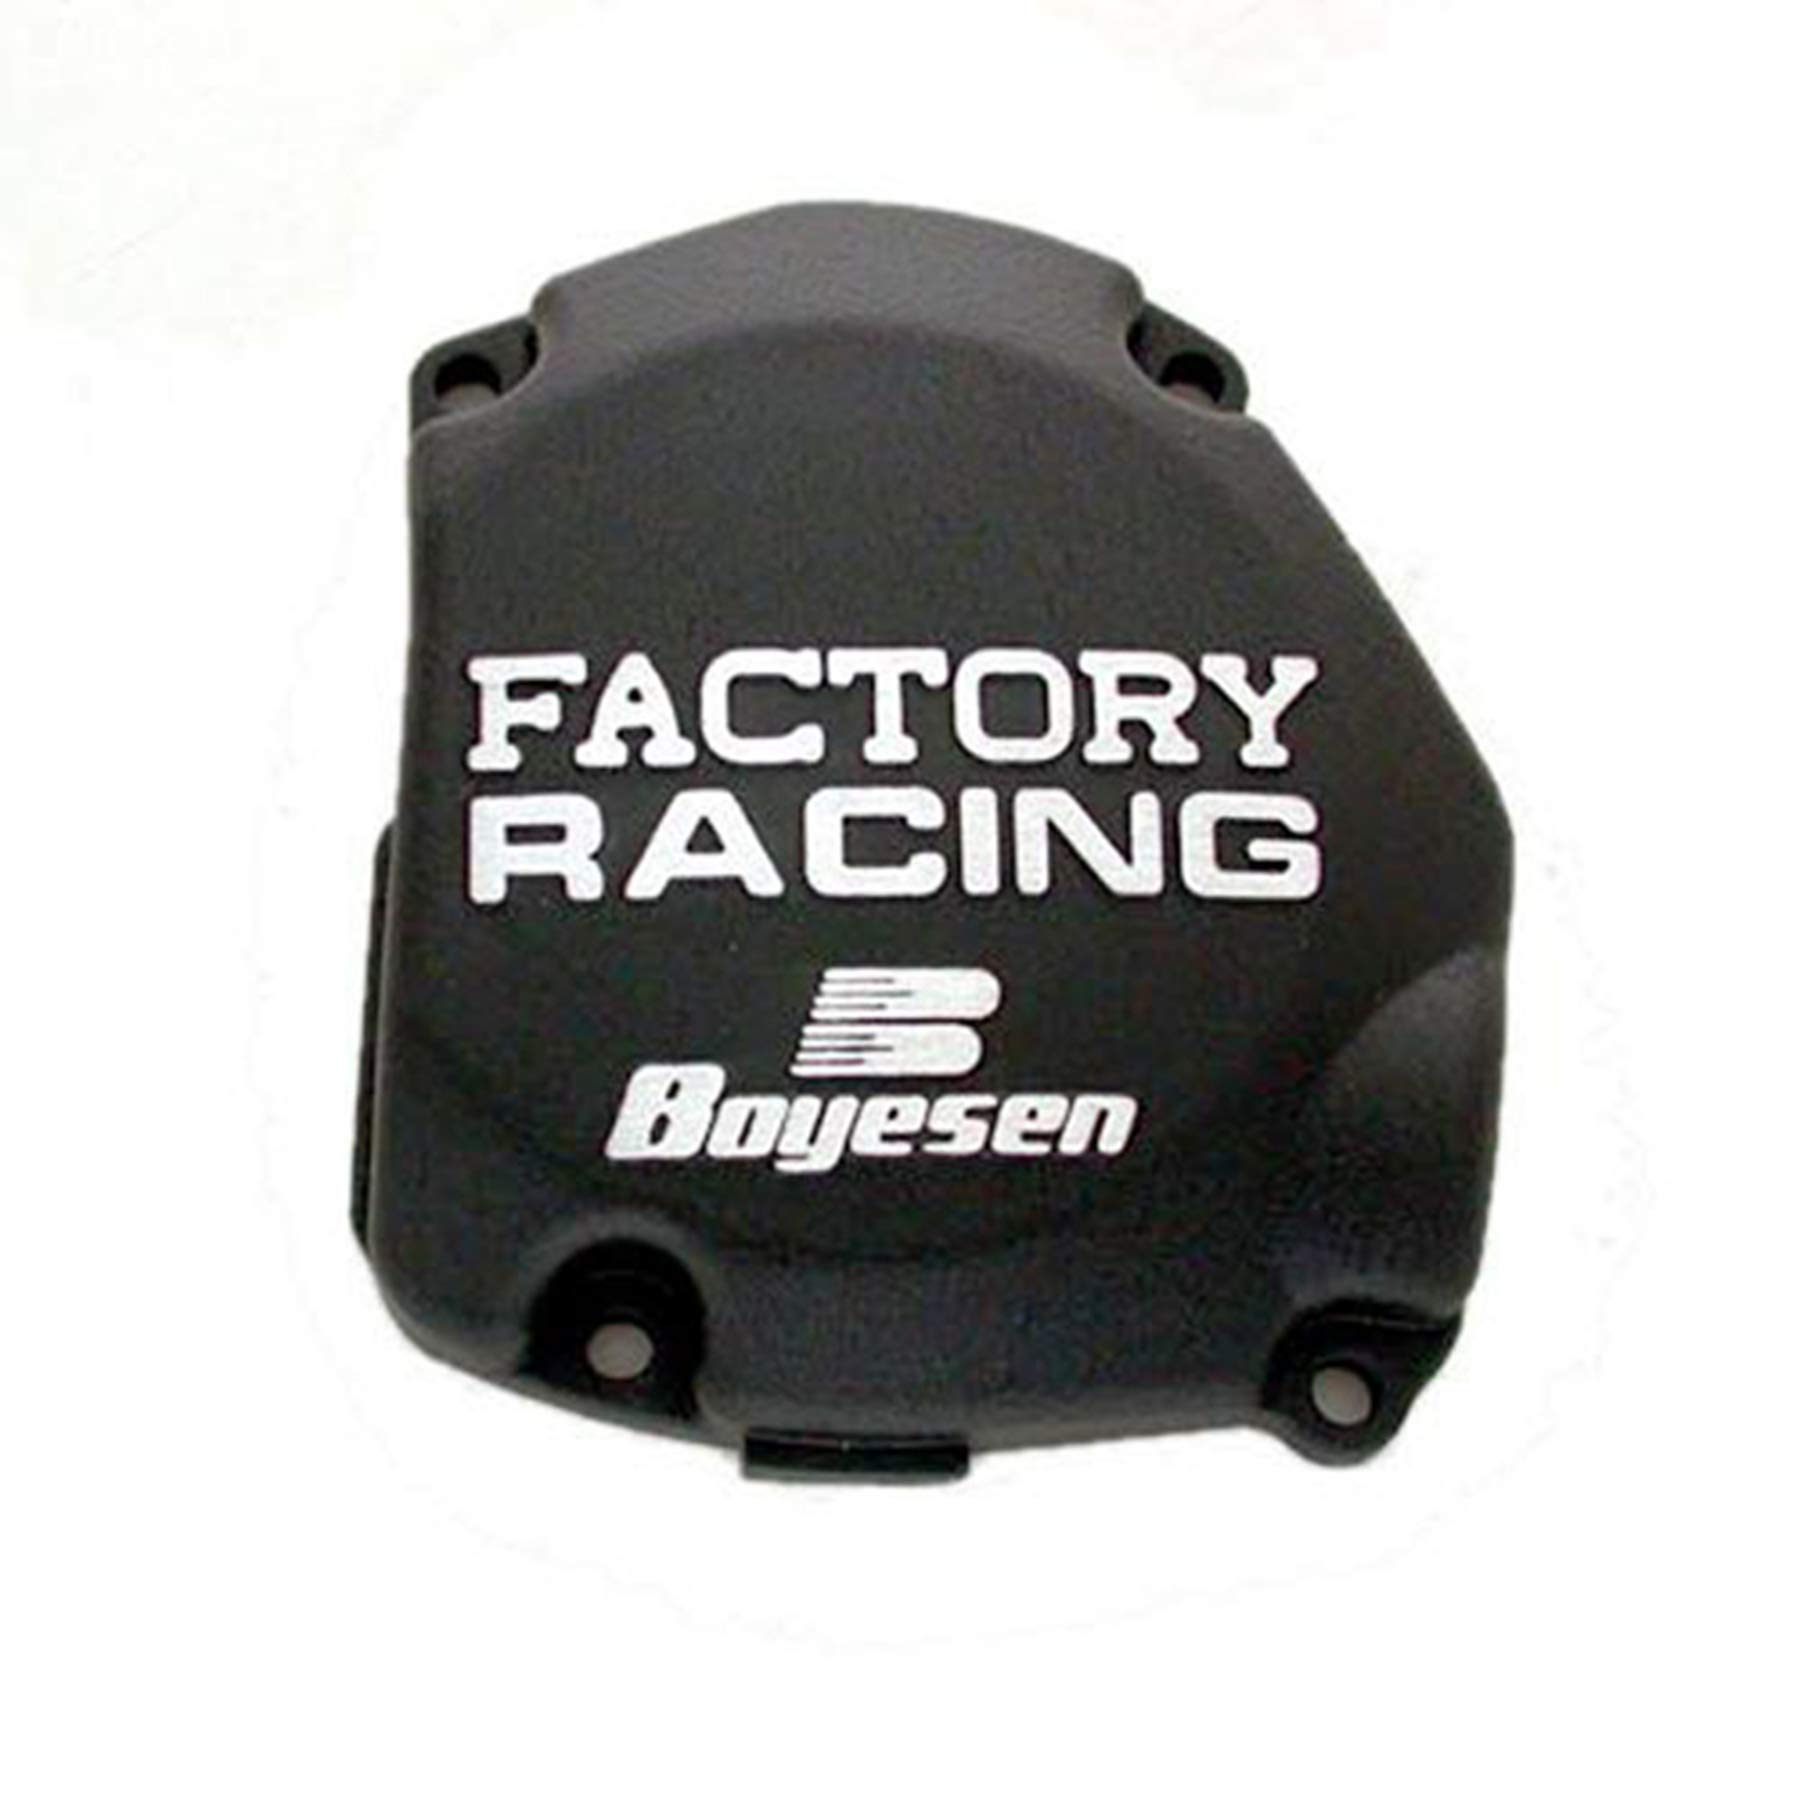 Factory Ignition Cover - Black 2007 Suzuki RM125 Offroad Motorcycle